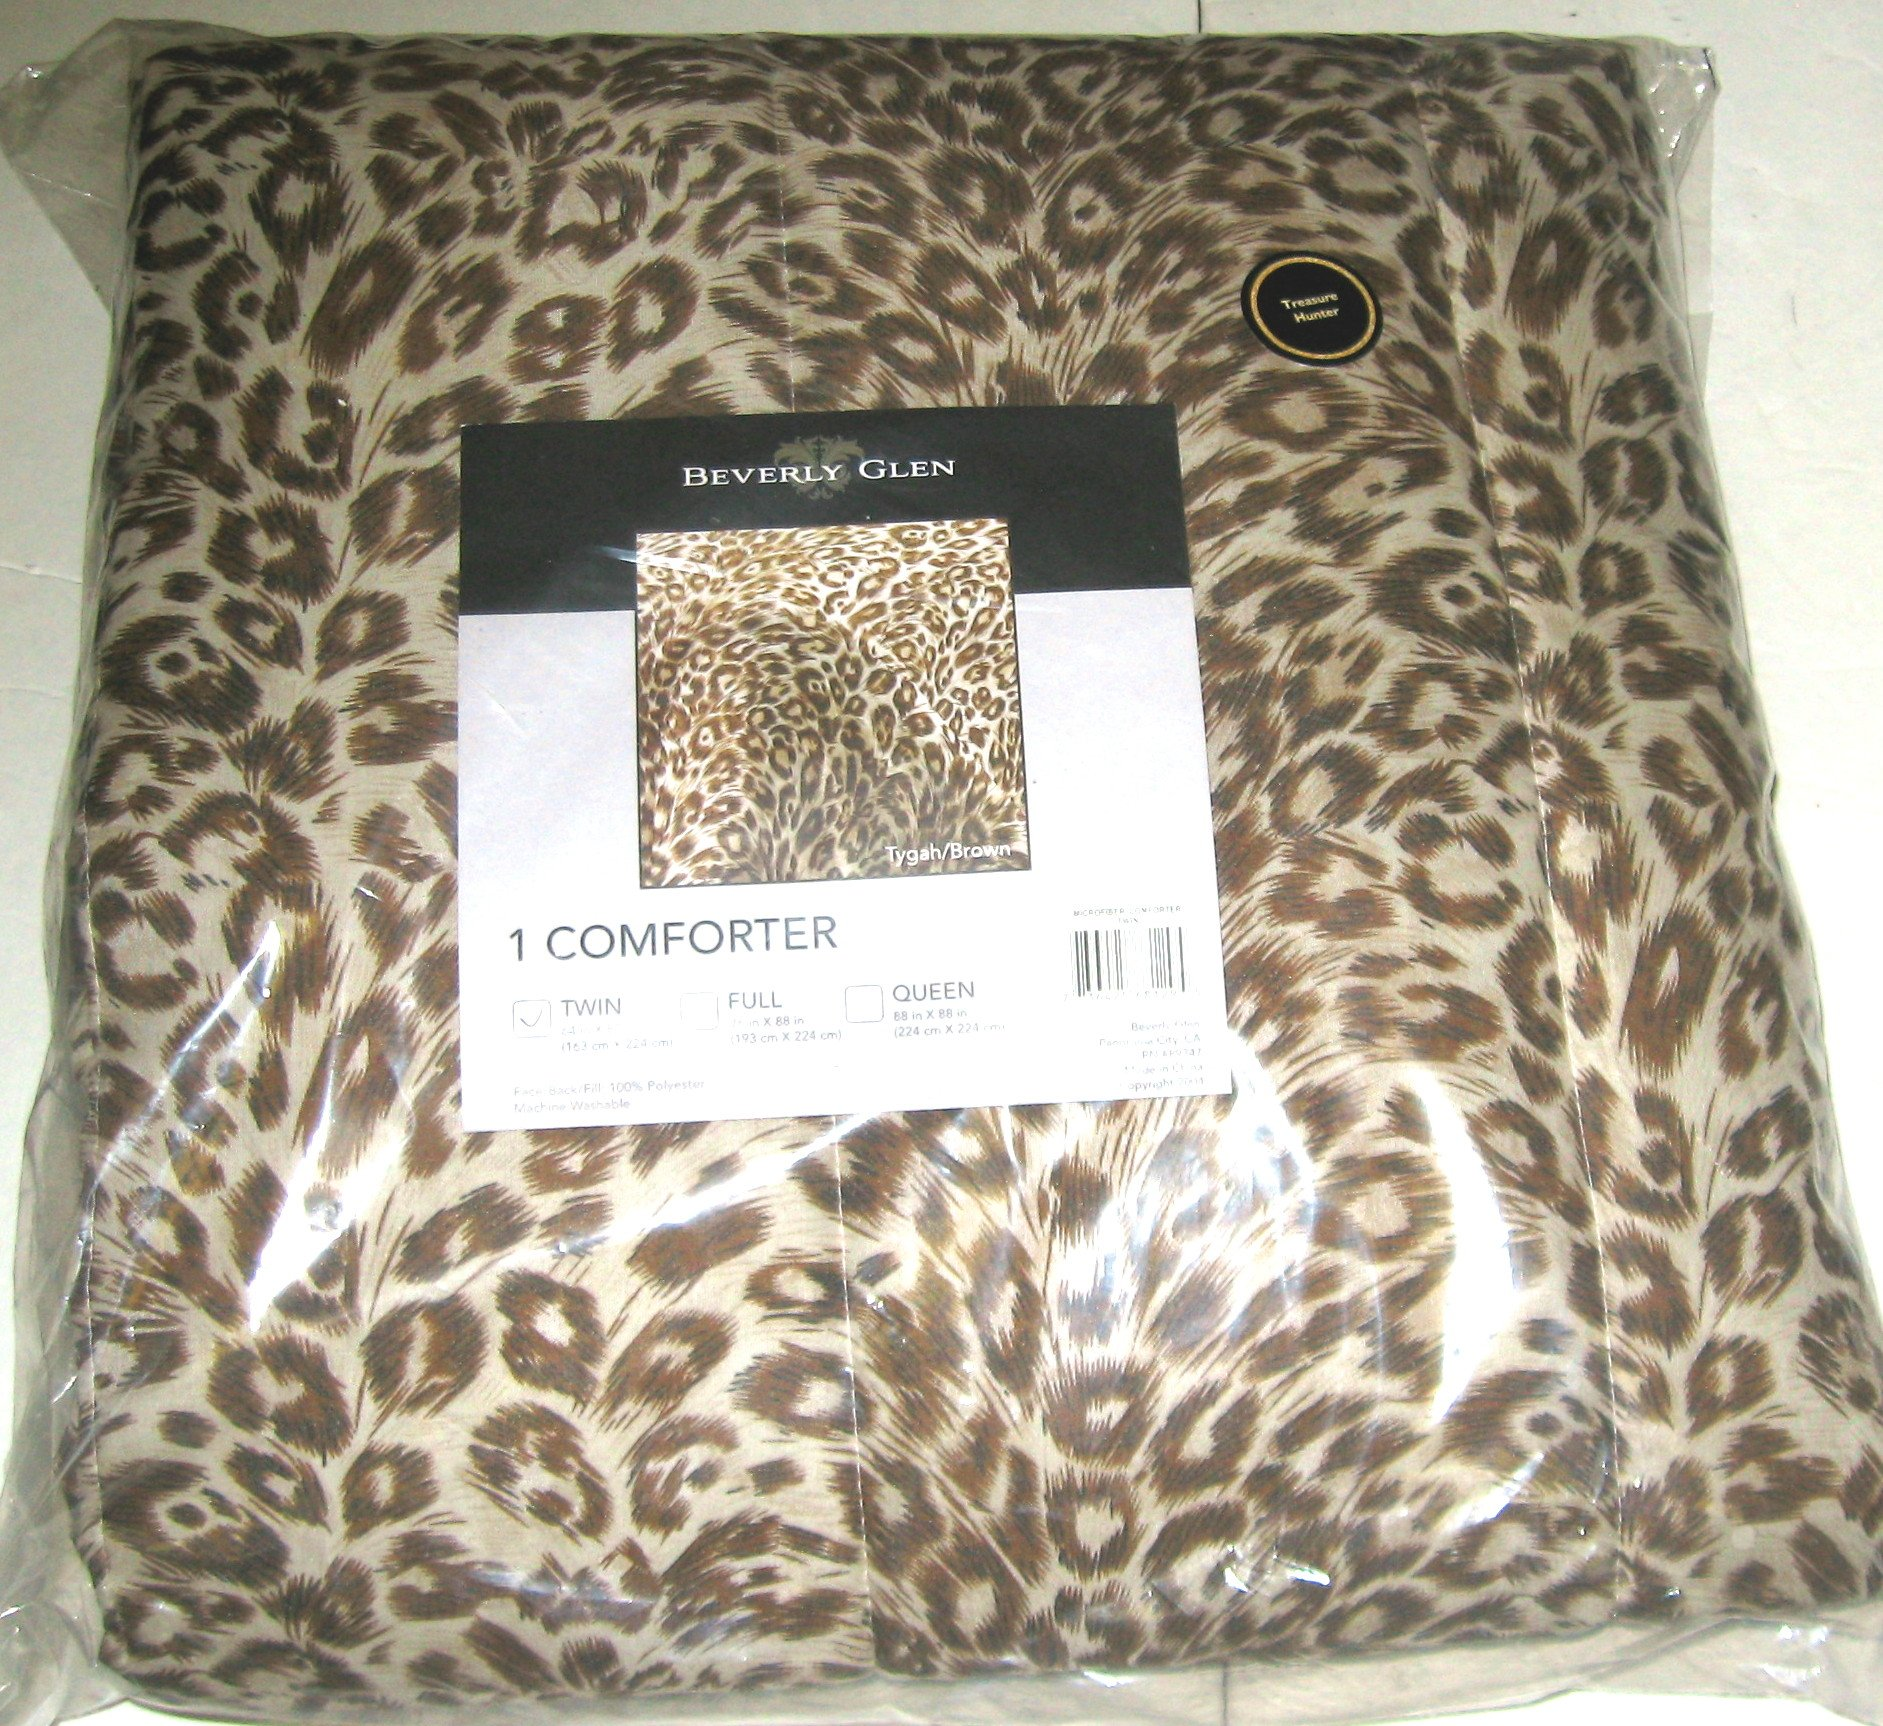 Beverly Glen Animal Print Microfiber Comforter Twin 64 in x 88 in